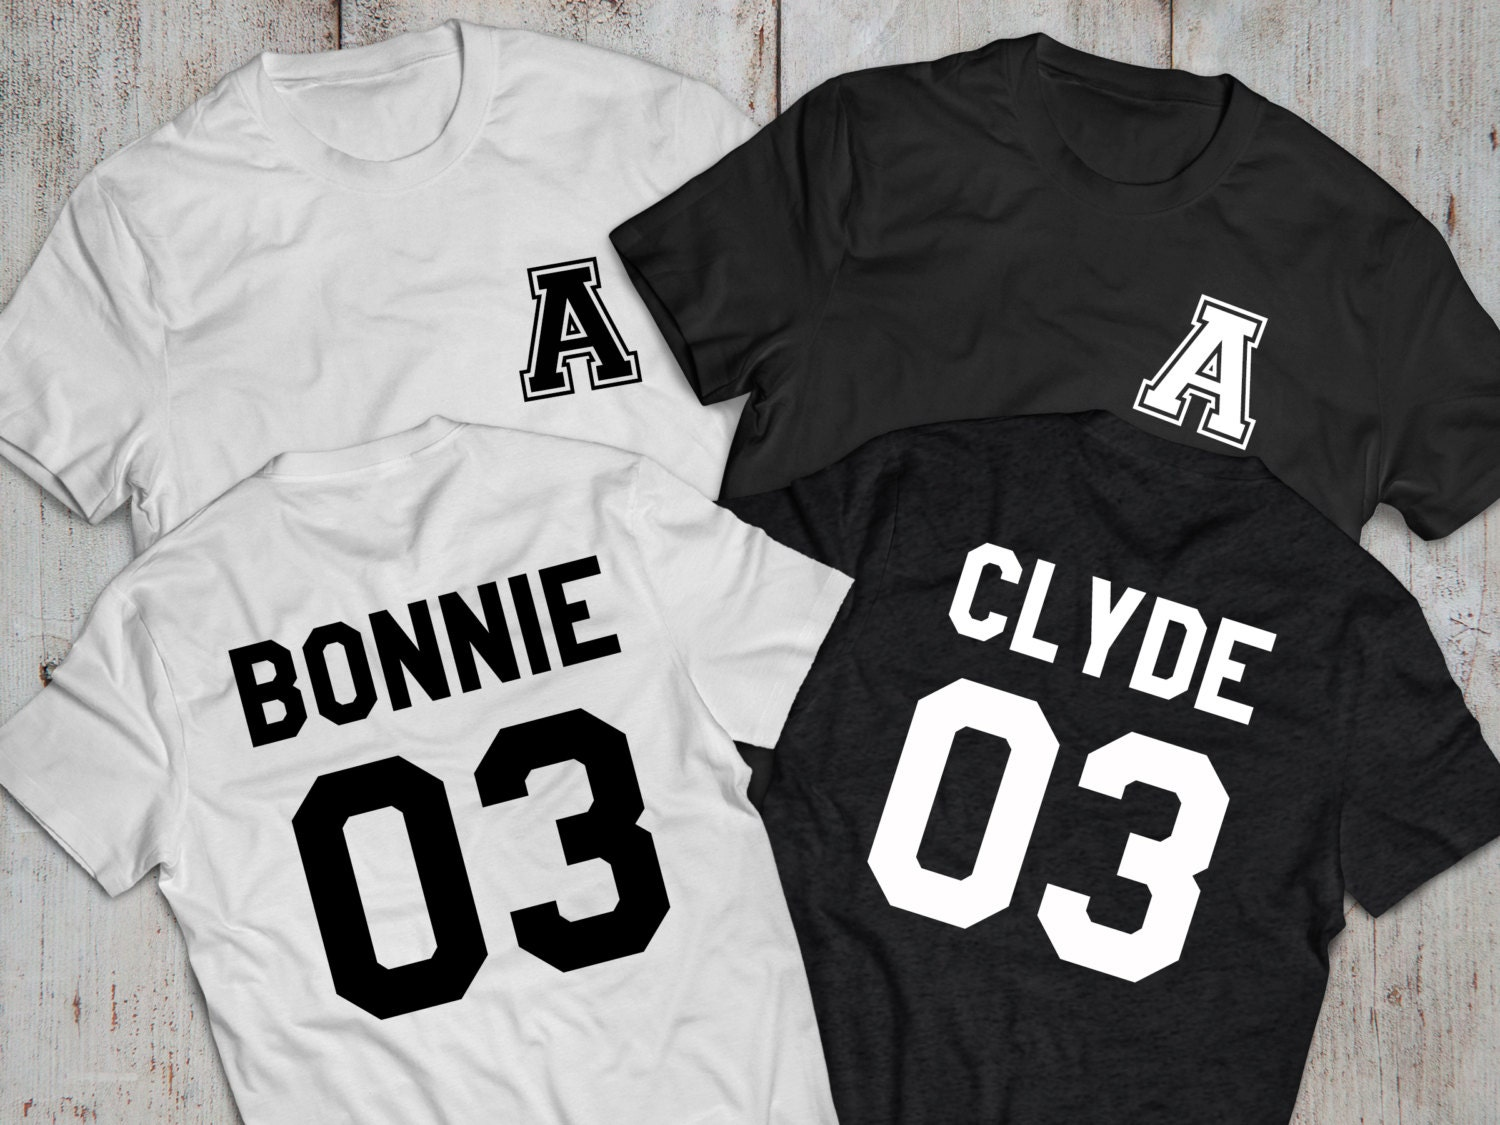 bonnie and clyde couples shirts with custom by epictees4you. Black Bedroom Furniture Sets. Home Design Ideas